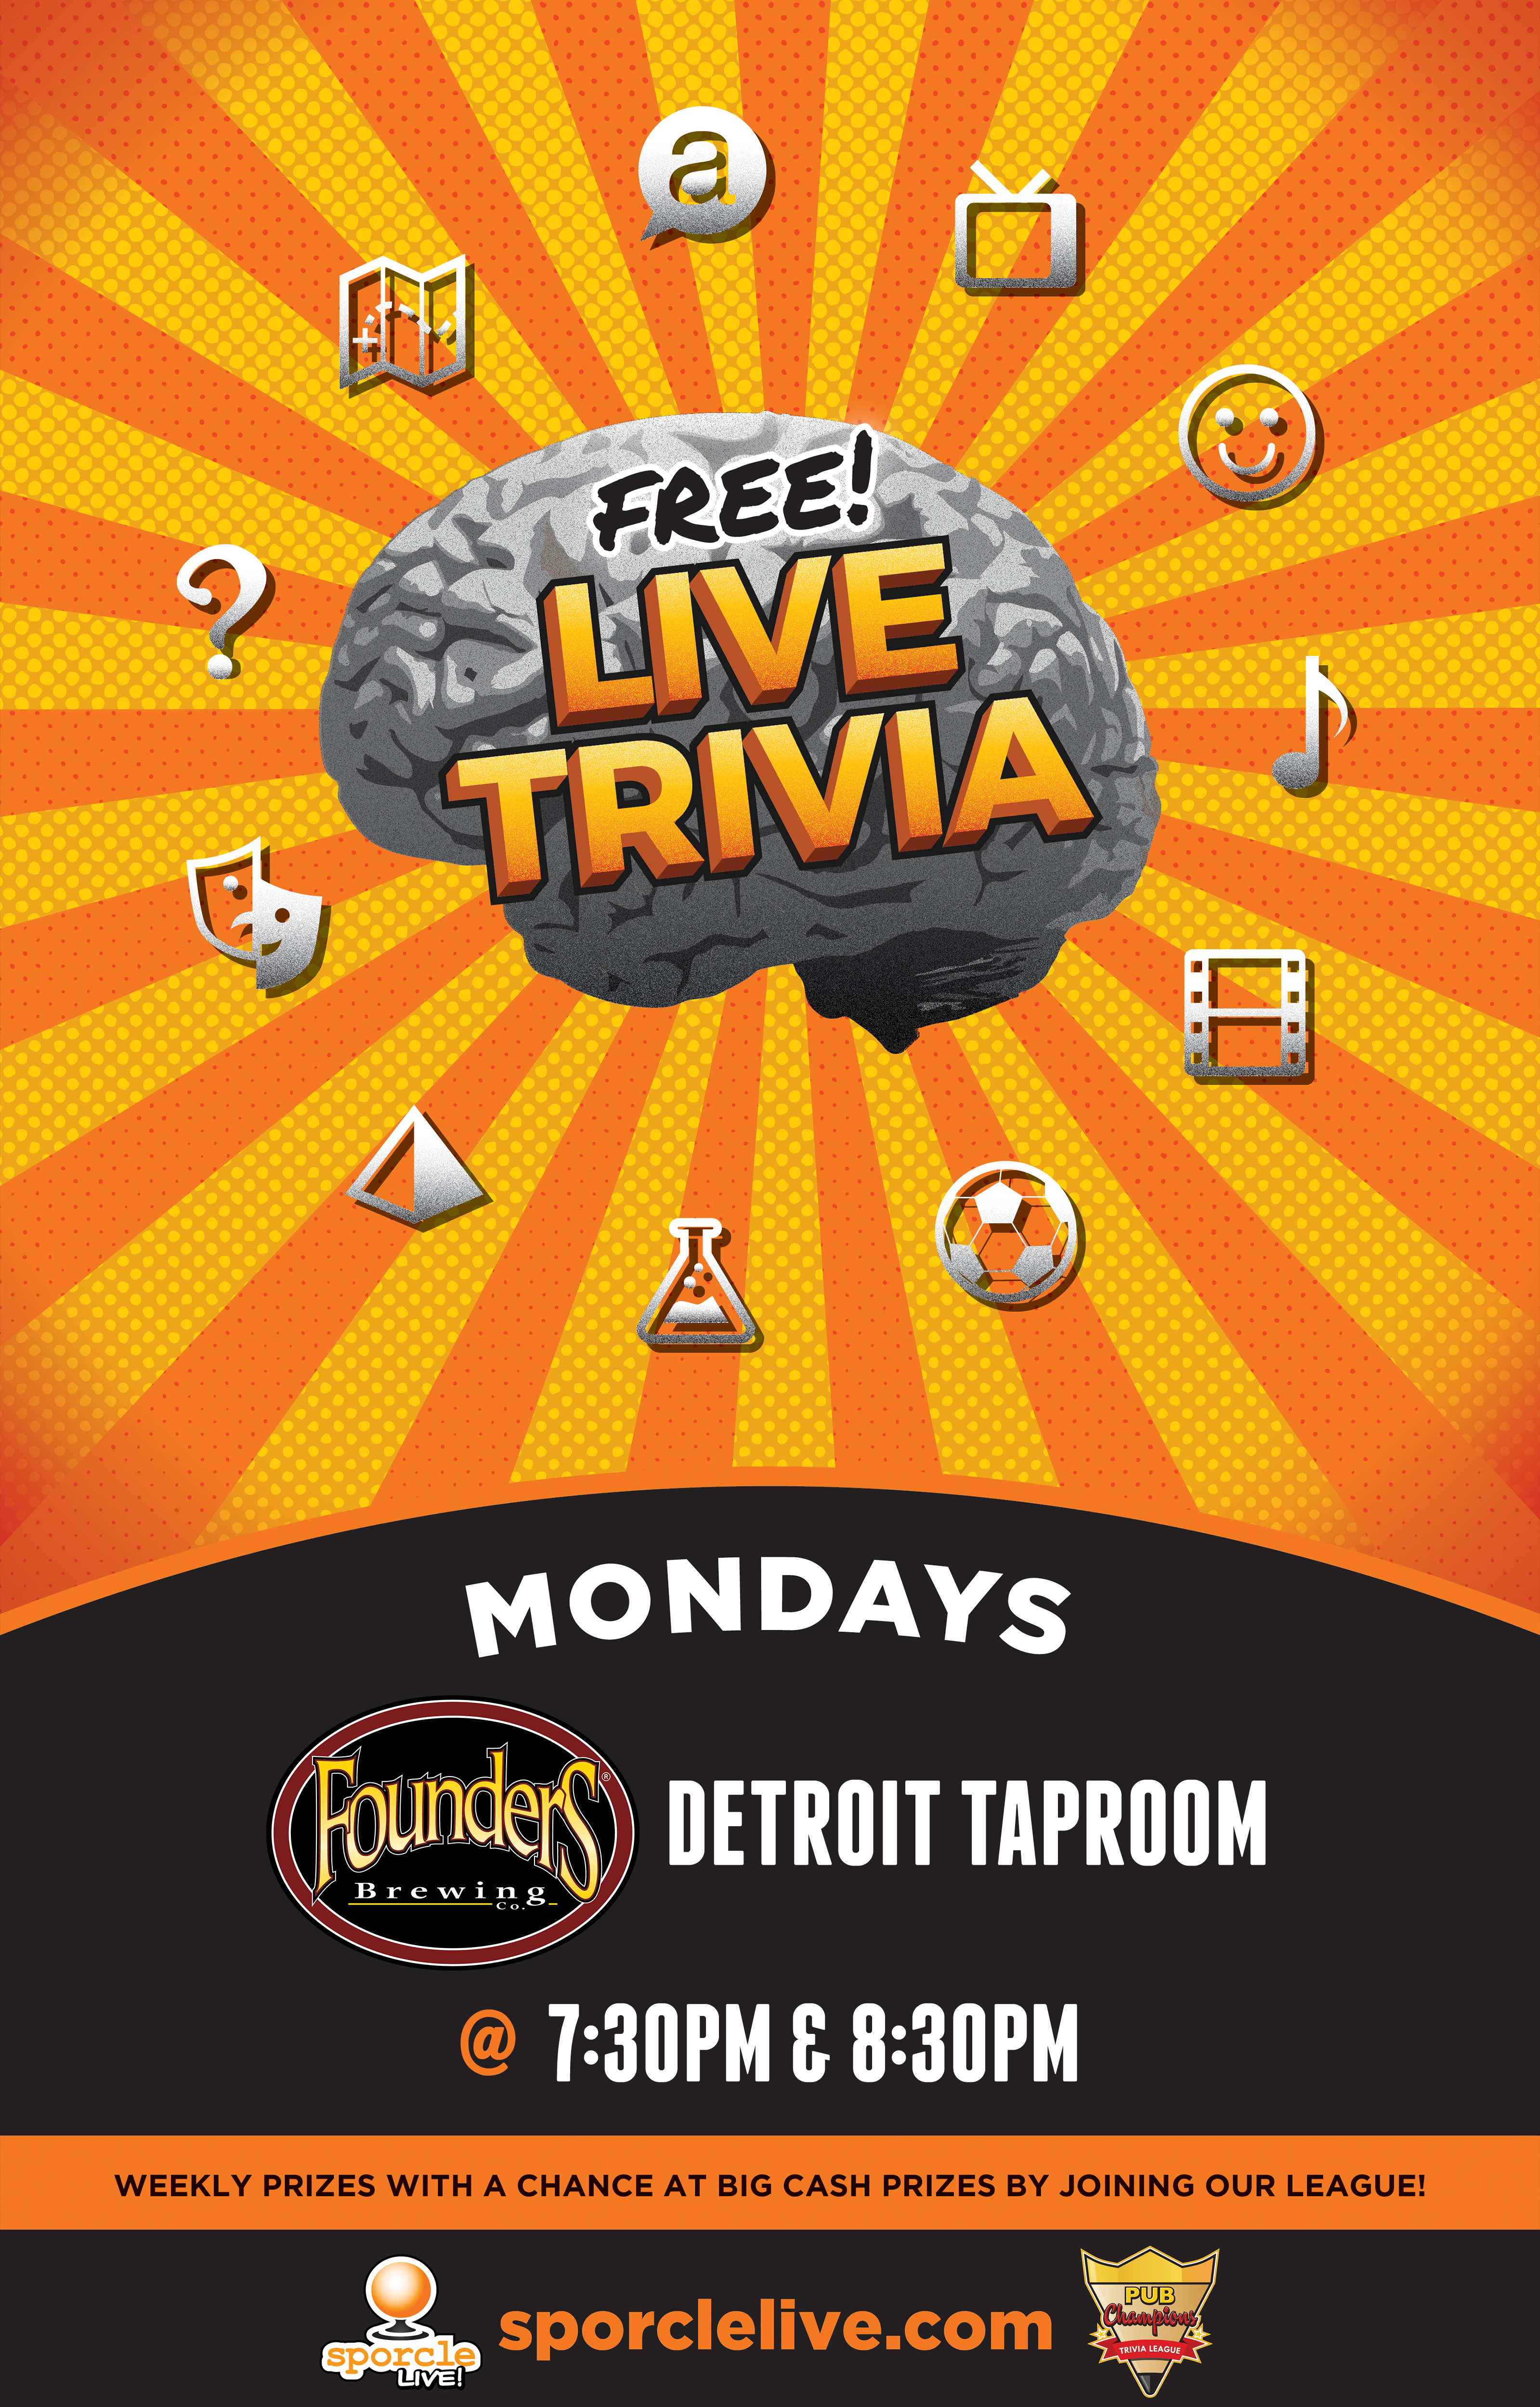 Free Live Trivia Mondays at Founders event poster